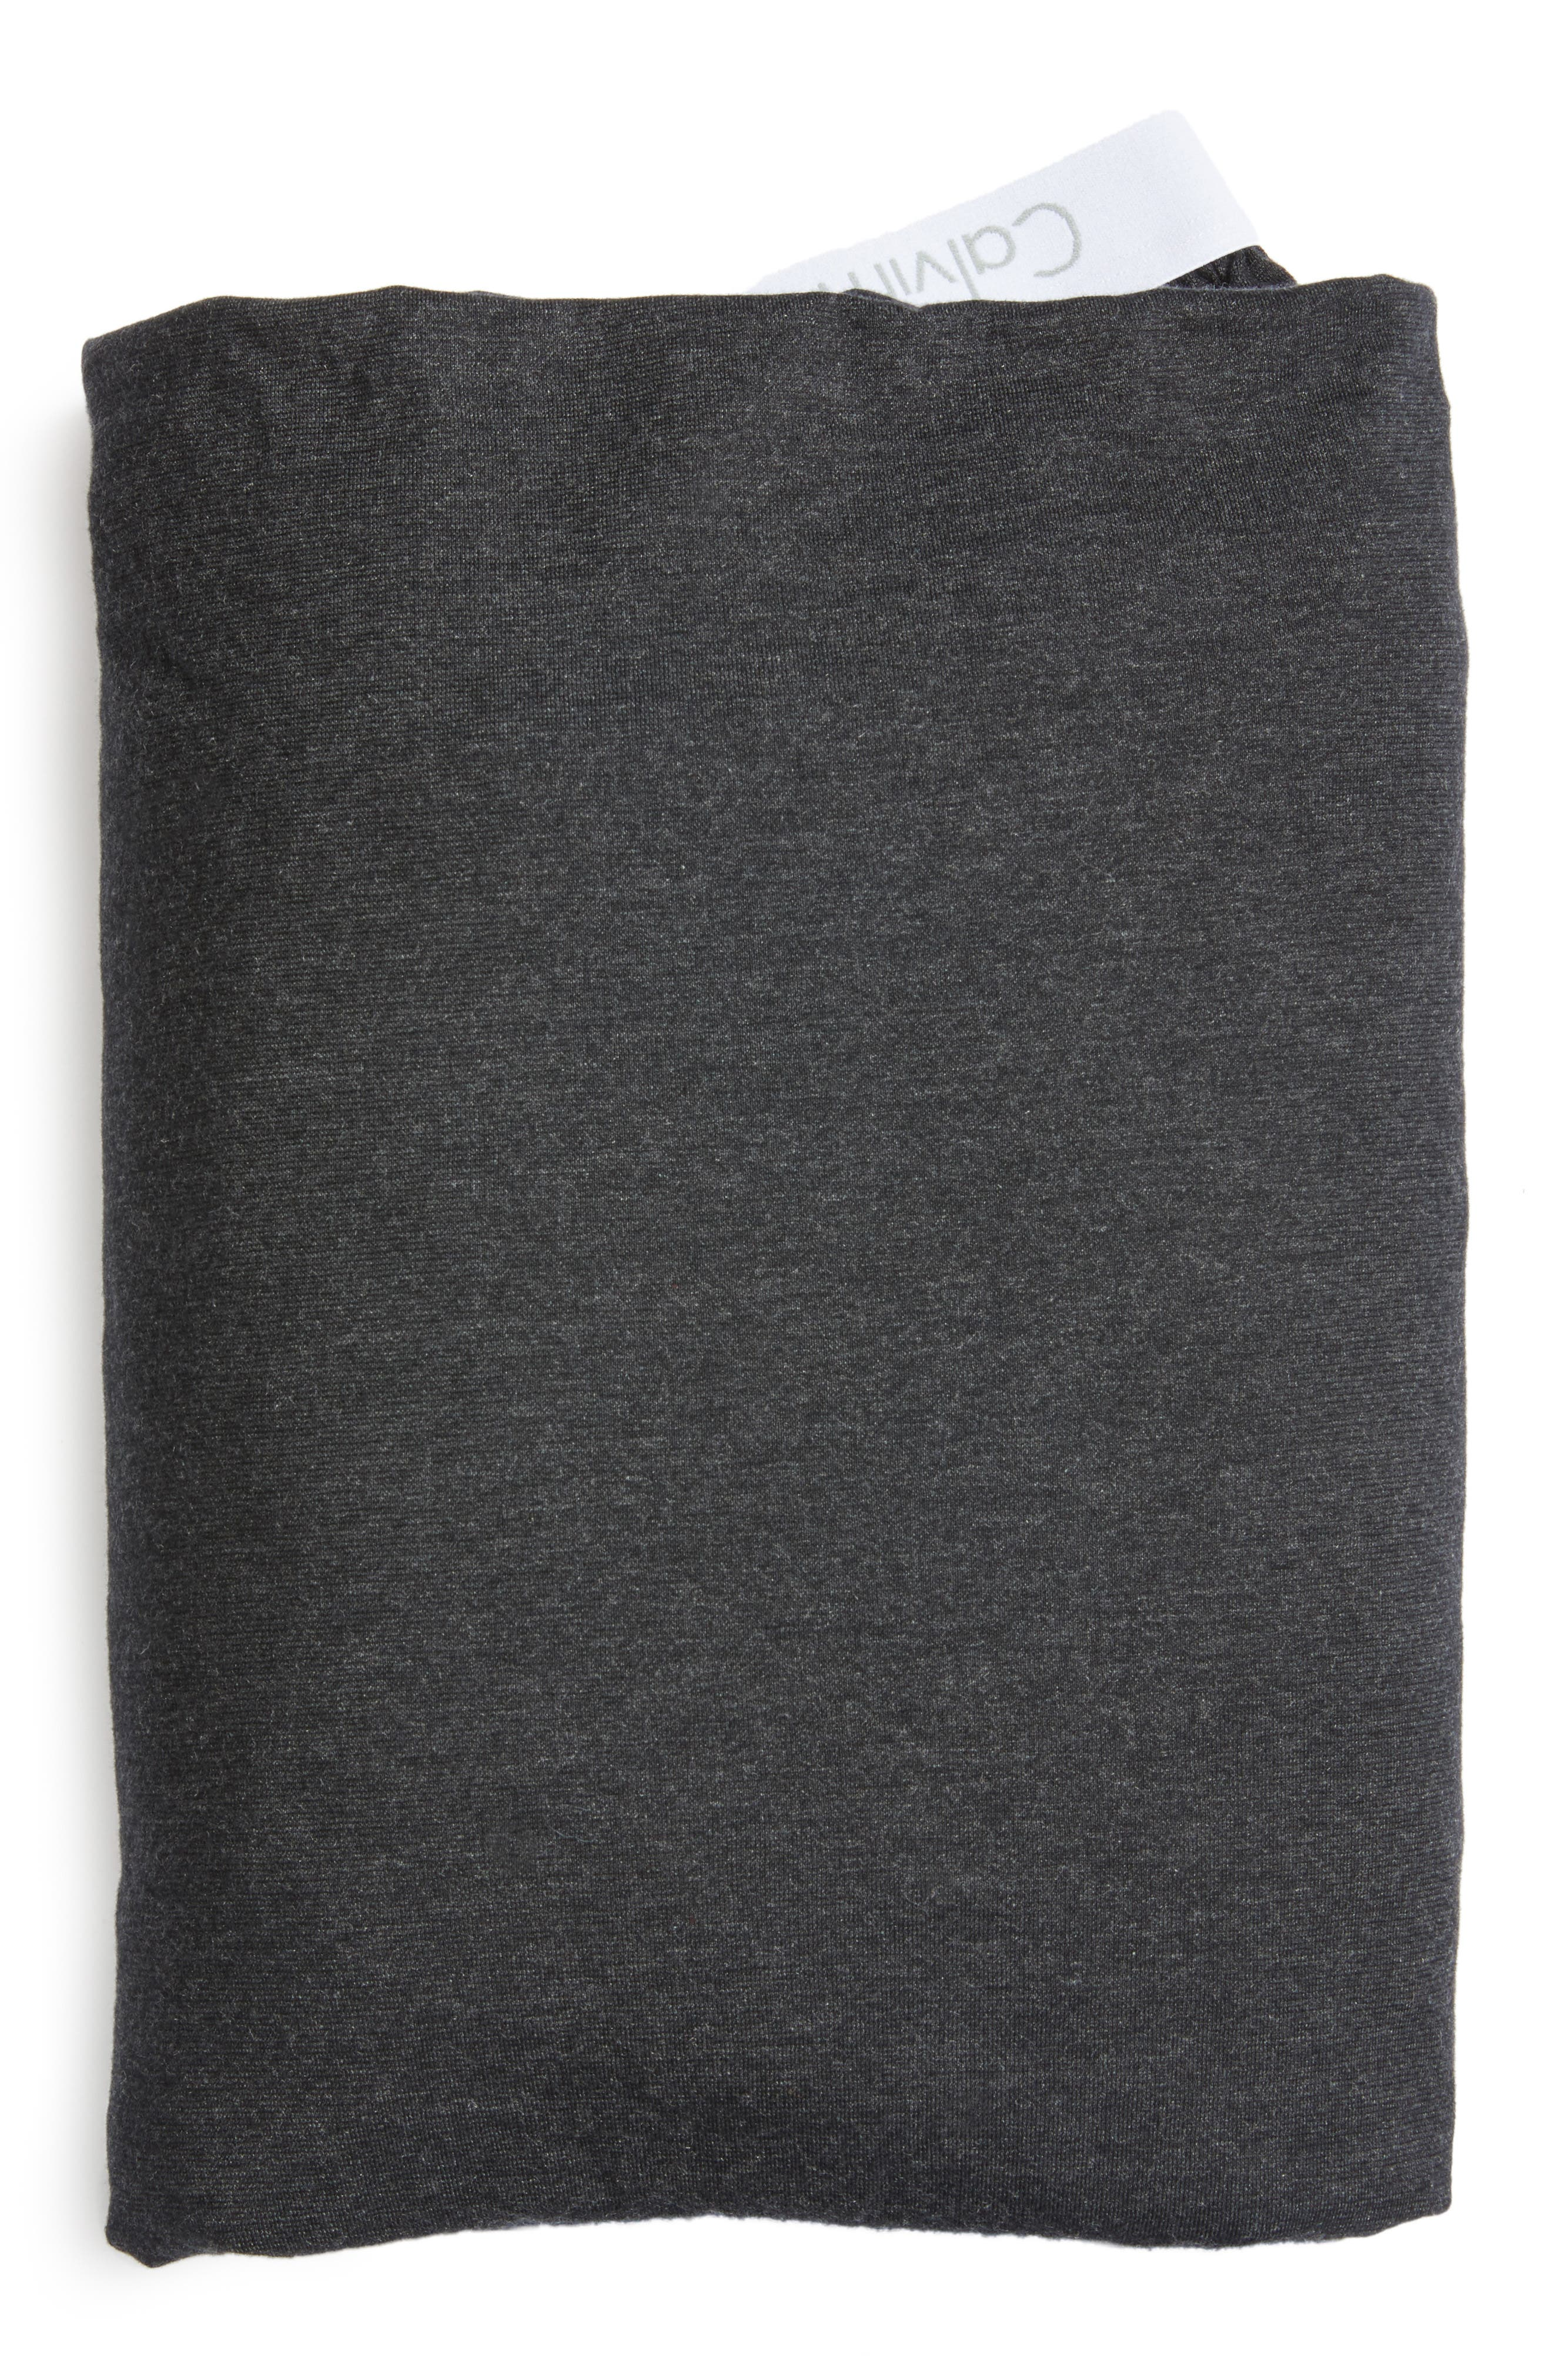 Cotton & Modal Jersey Fitted Sheet,                         Main,                         color, 001